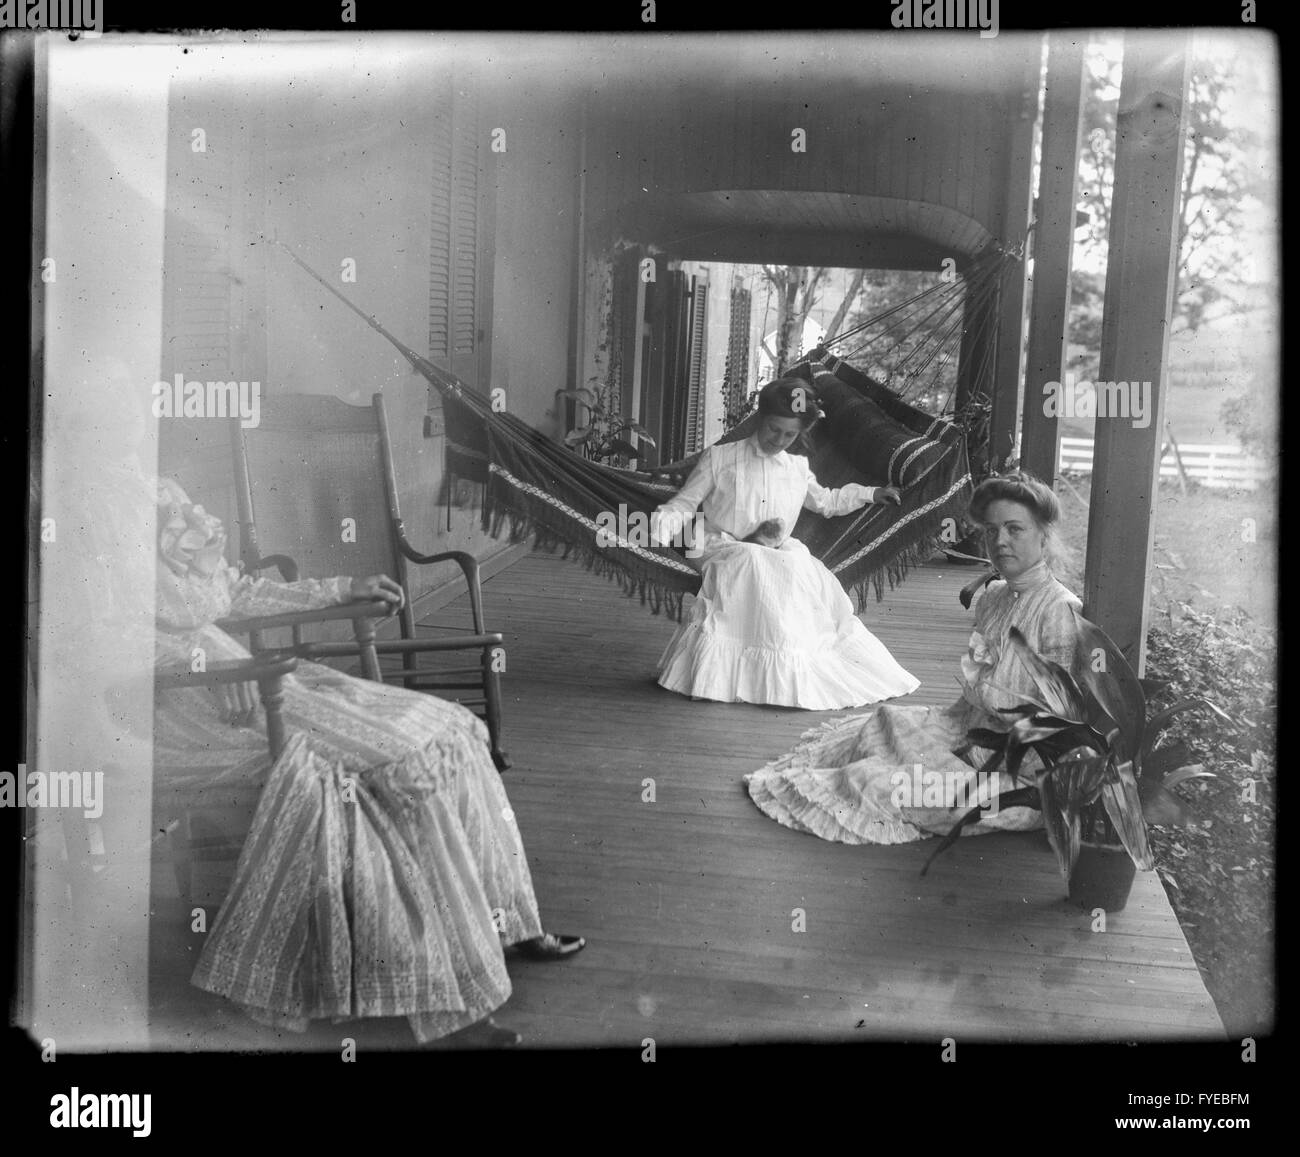 Victorian photograph of women on a porch with a hammock in Fallston, Maryland. - Stock Image